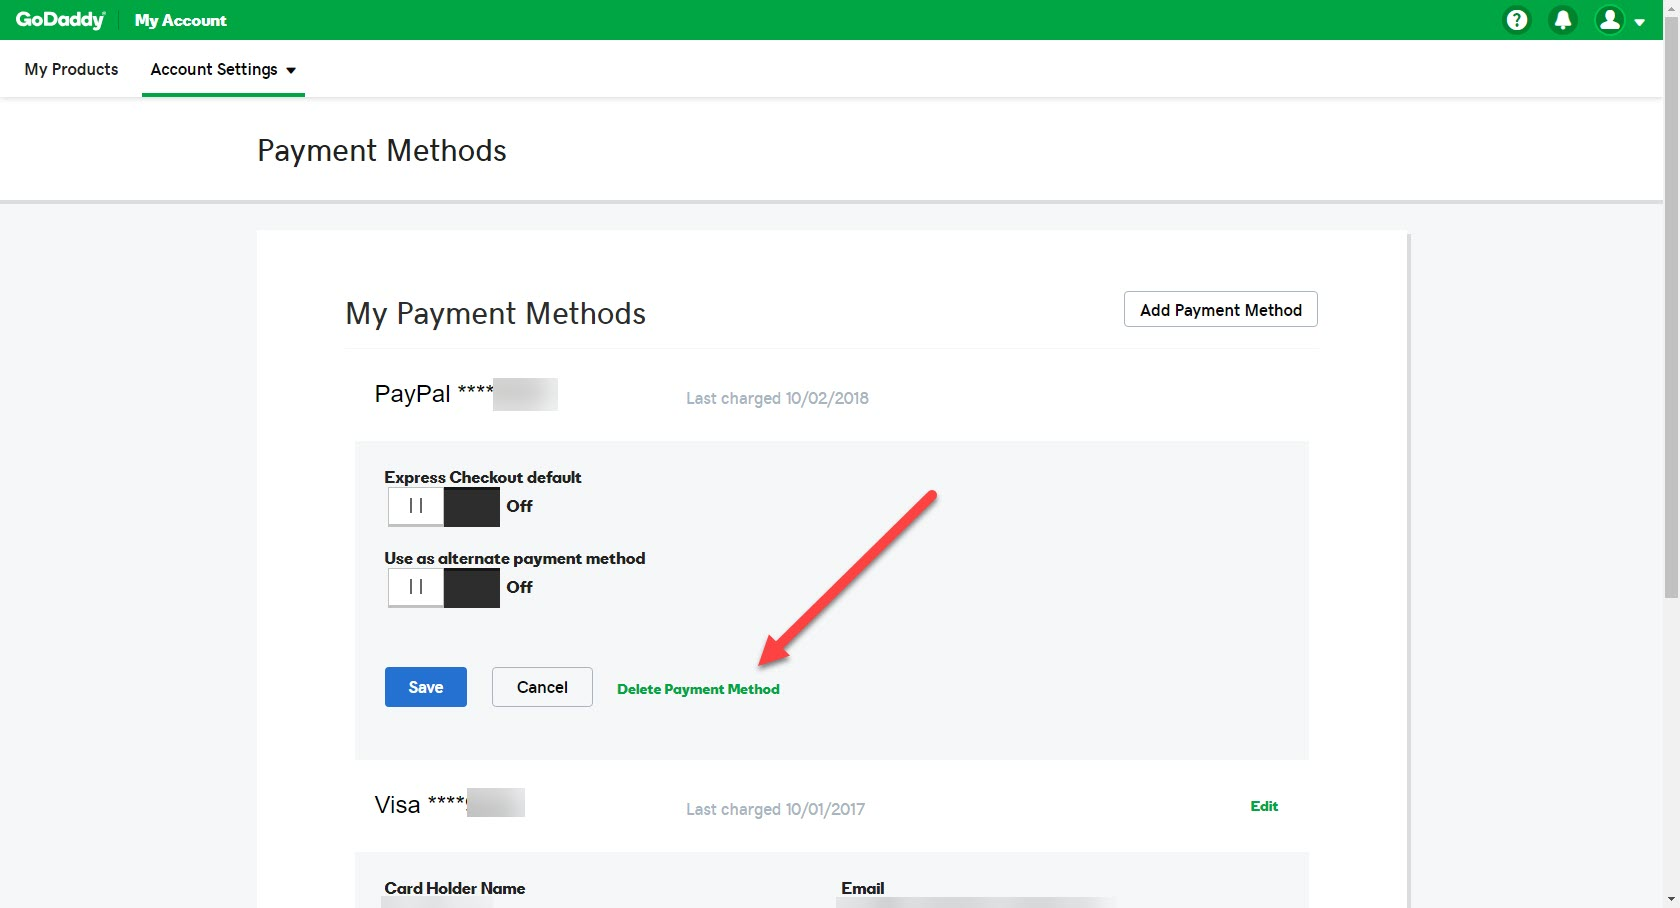 godaddy-change-payment-method-08.jpg